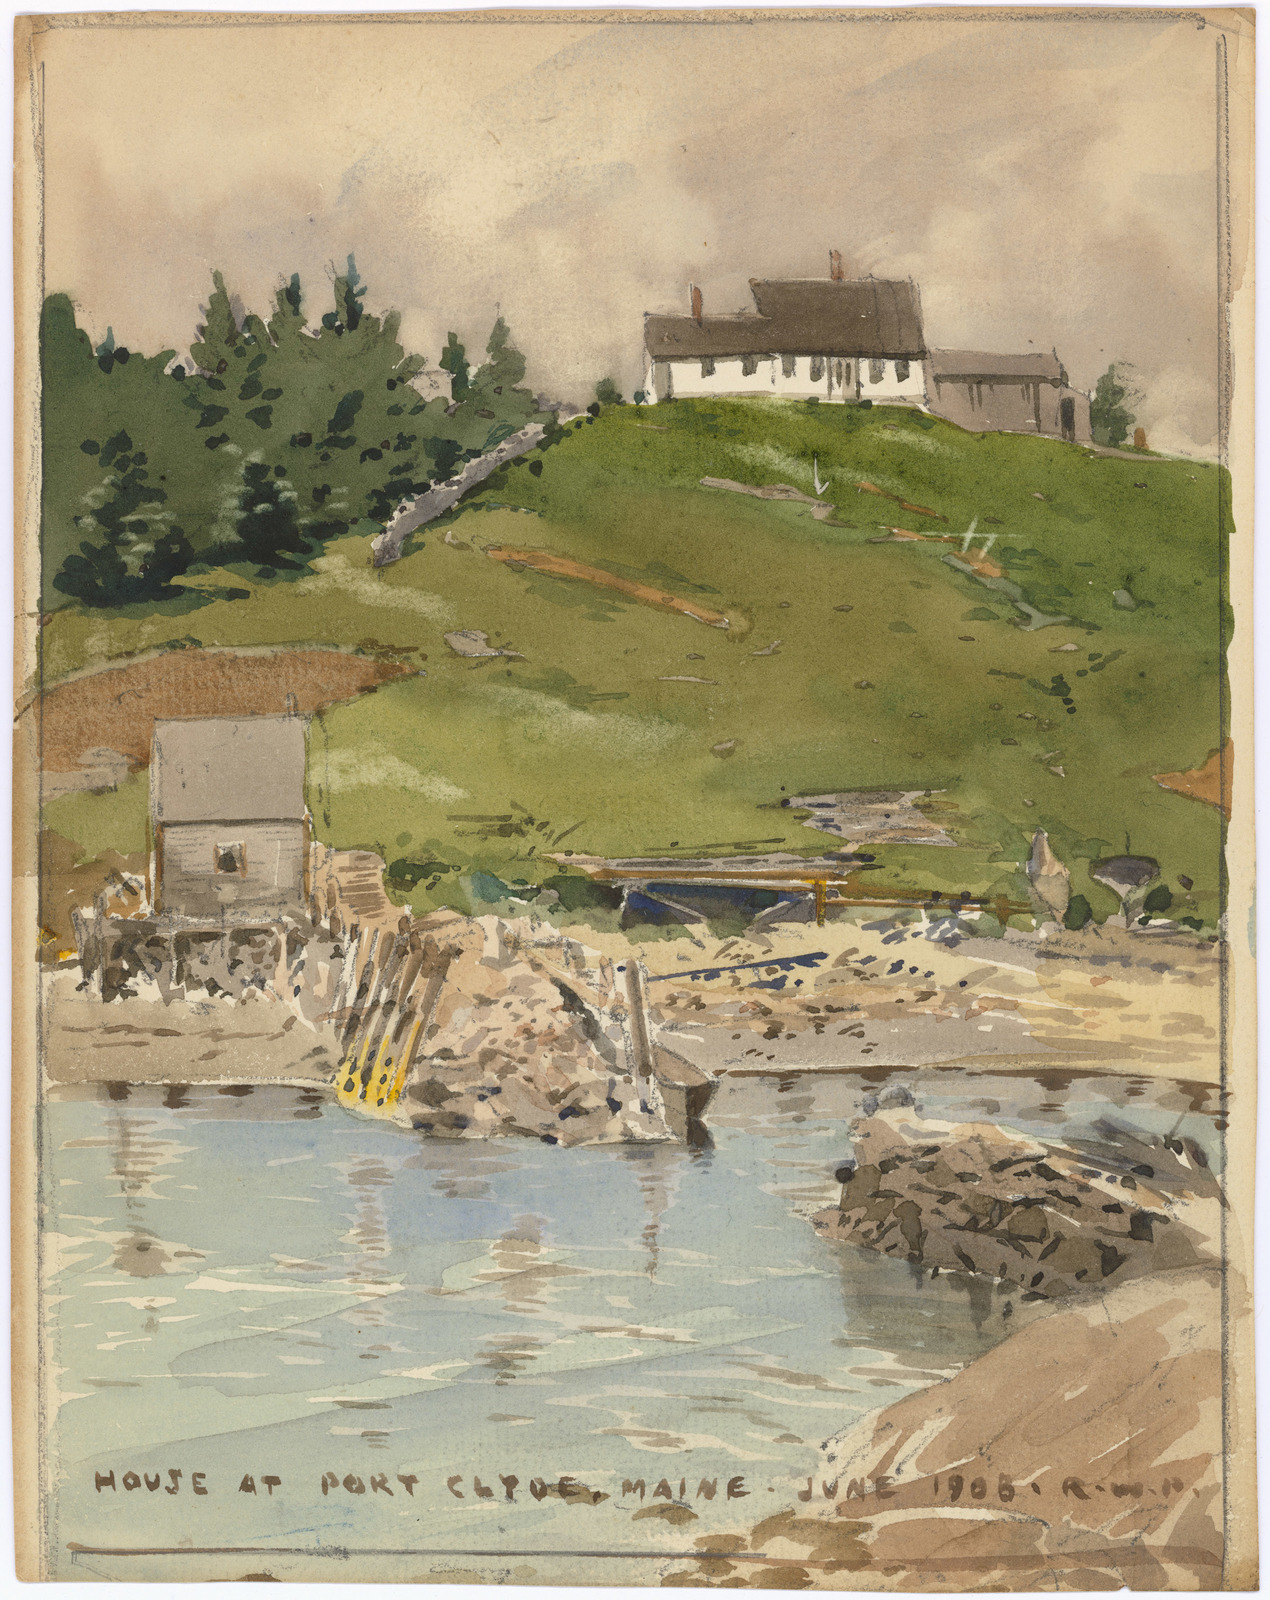 House at Port Clyde, Maine